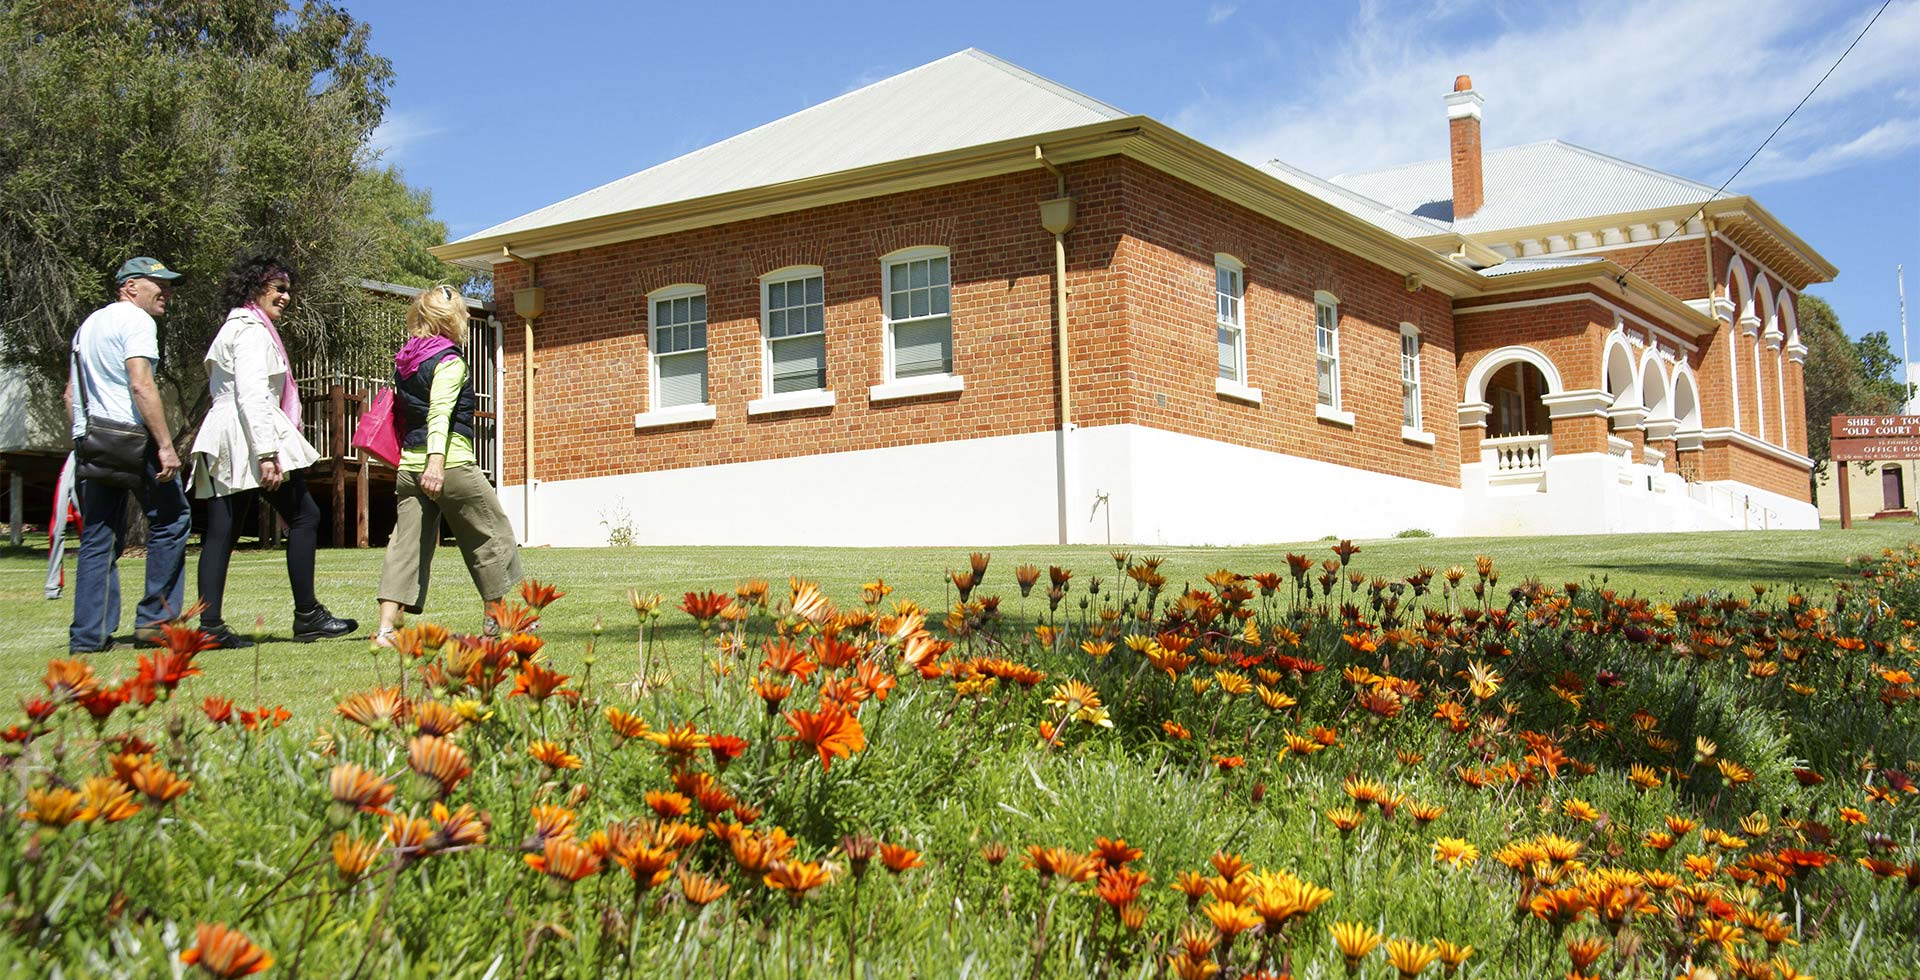 See the historic Courthouse Building in Toodyay